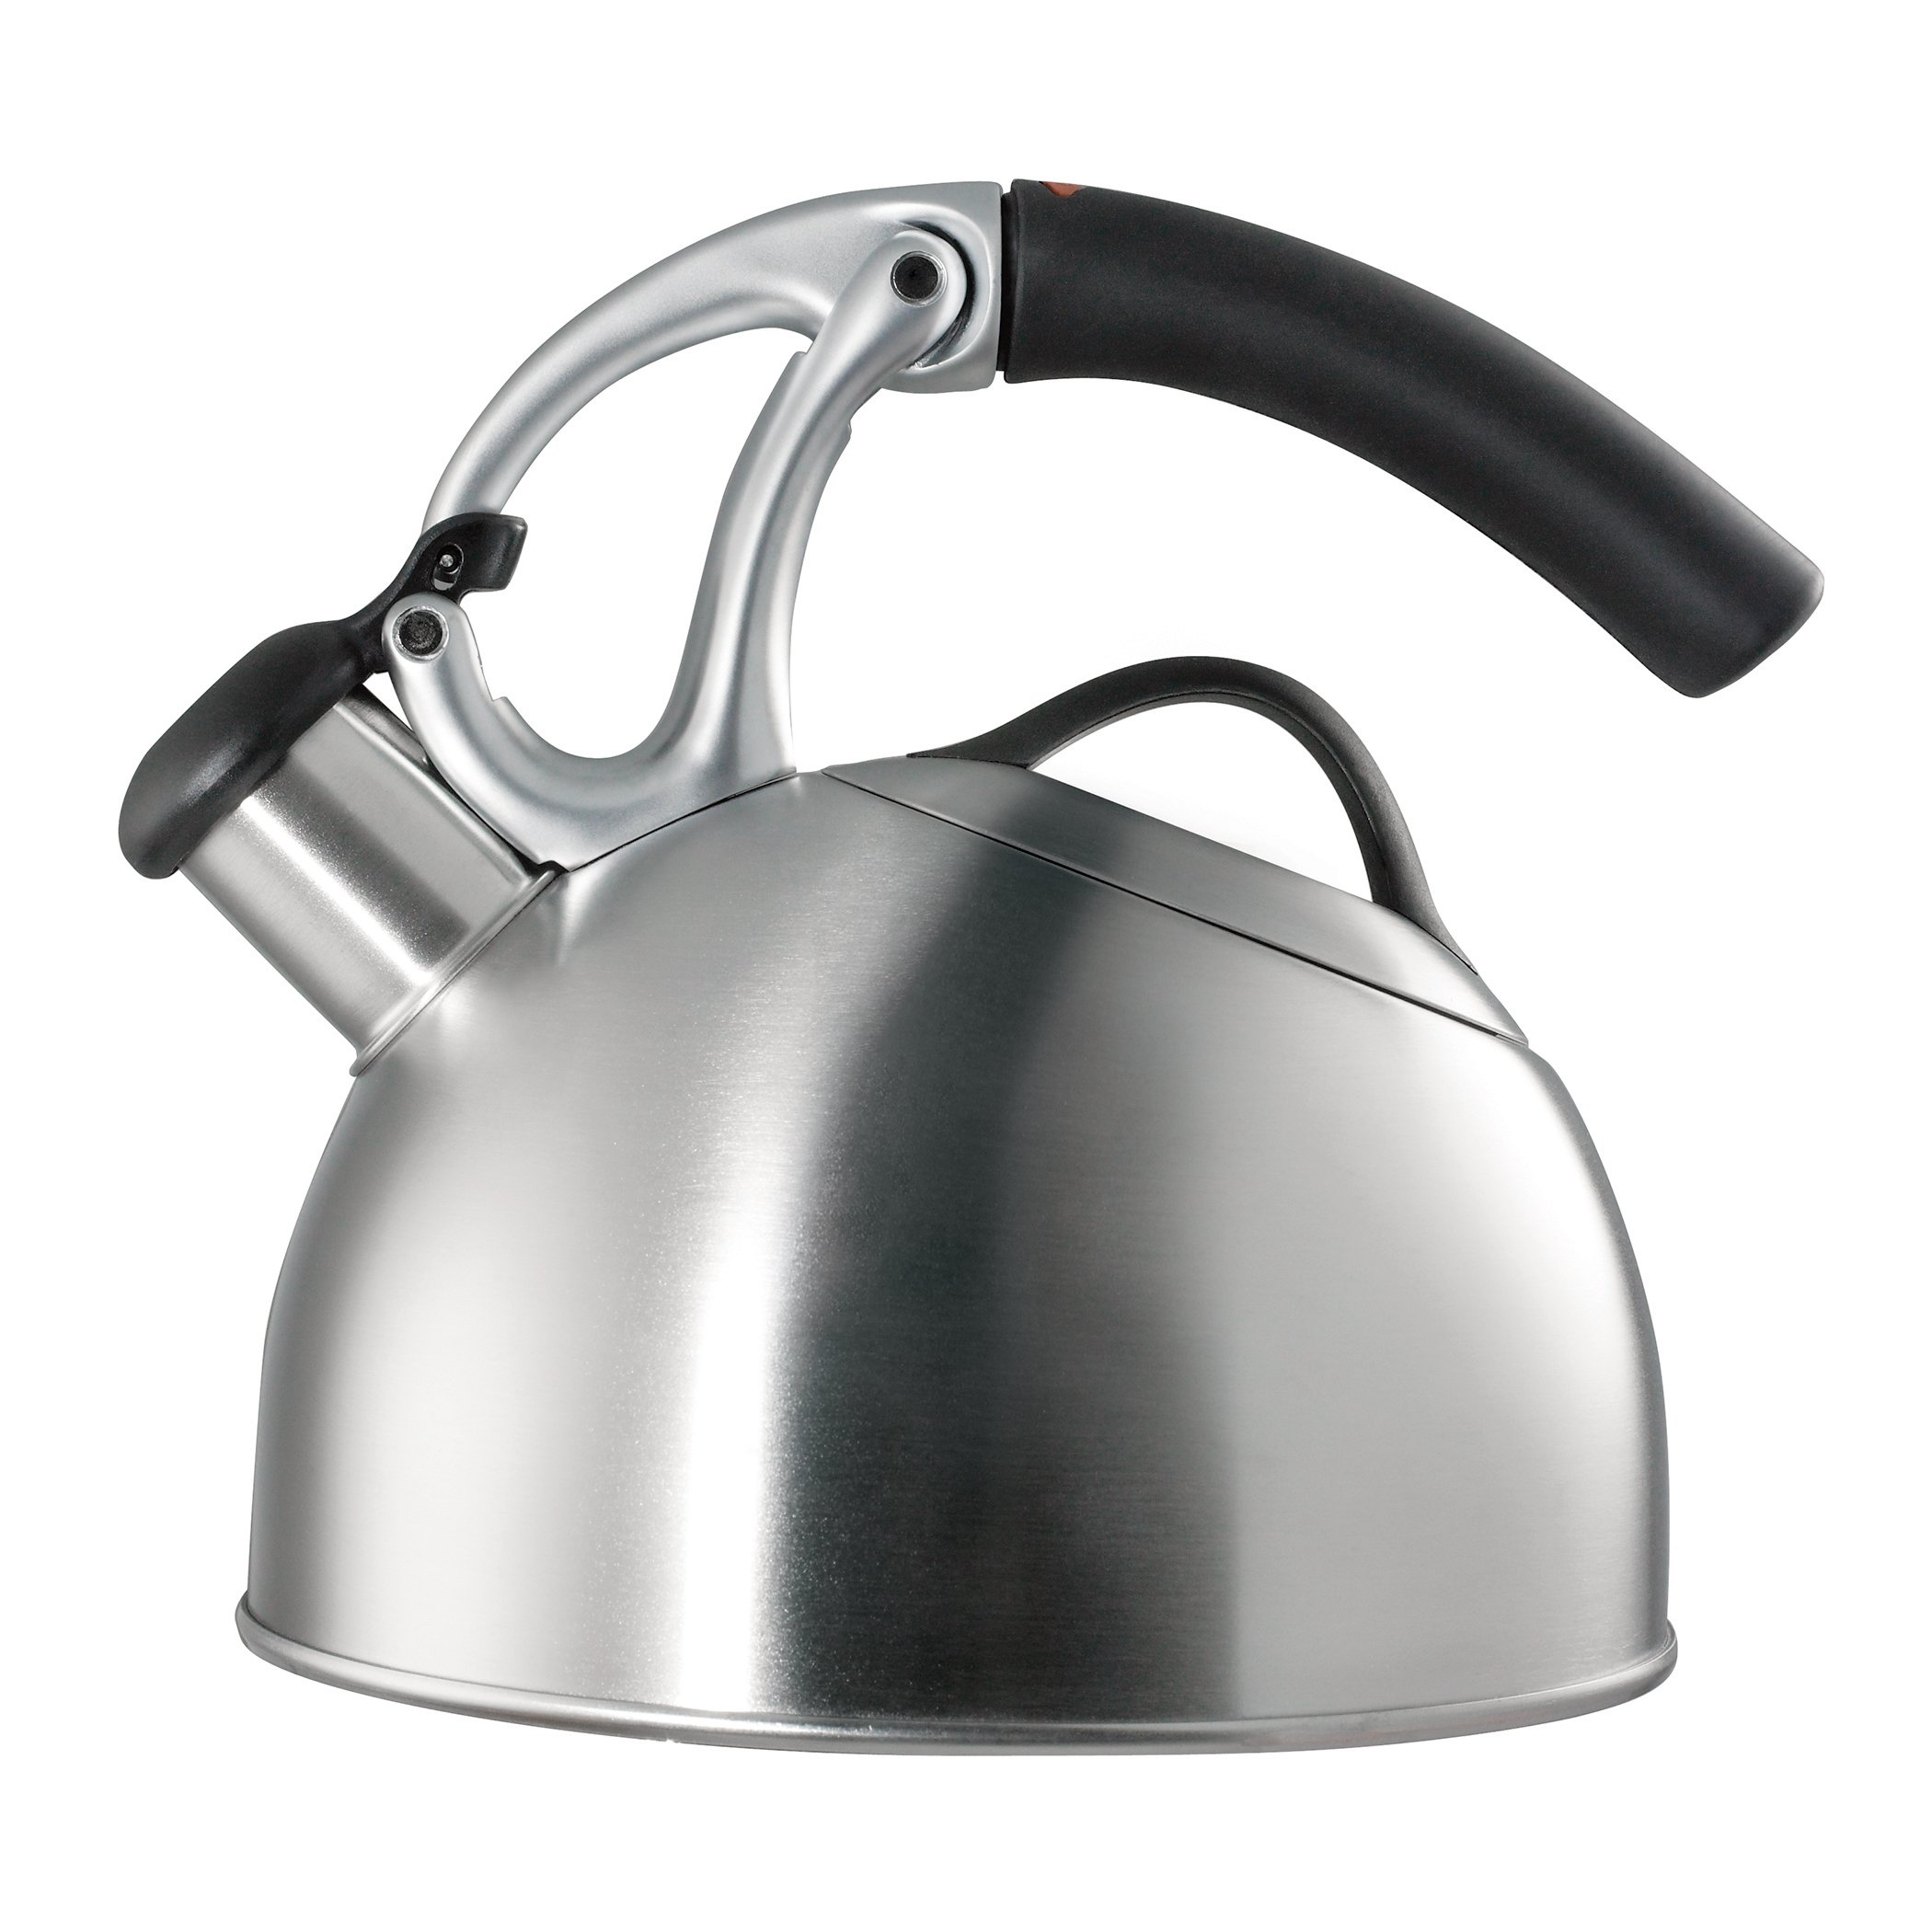 OXO BREW Uplift Tea Kettle, Brushed Stainless Steel by OXO